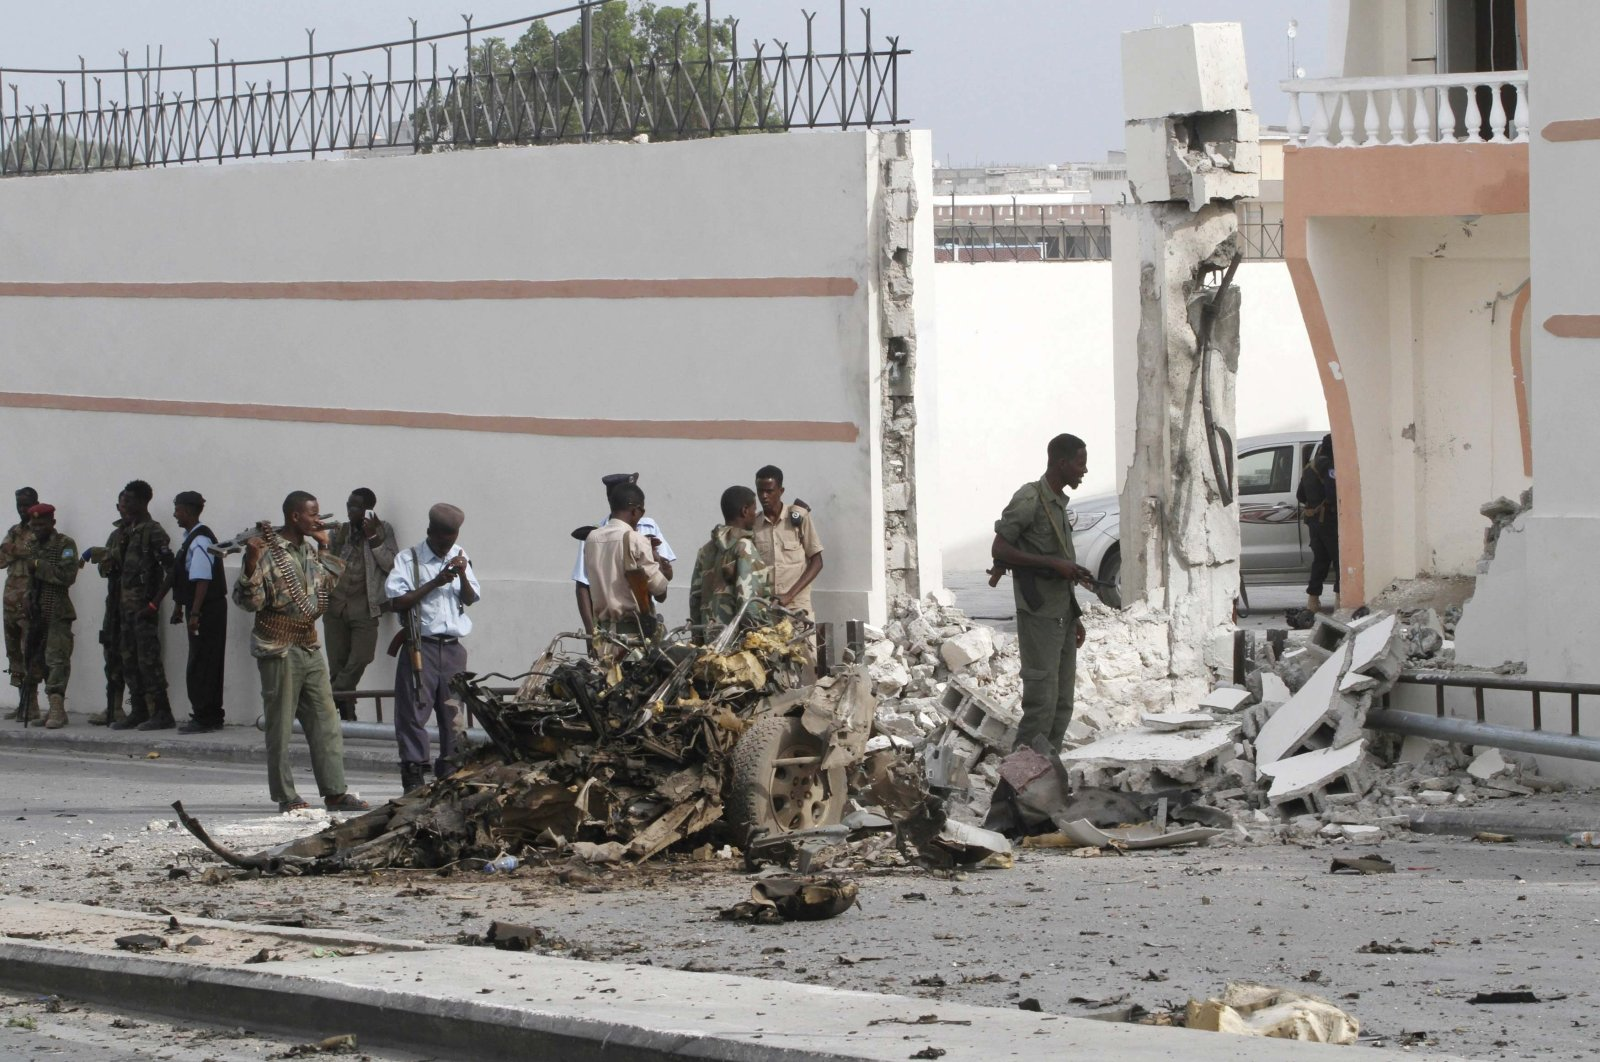 Somali government forces assess the scene of a suicide car explosion in front of the SYL hotel in the capital Mogadishu, Jan. 22, 2015. (Reuters File Photo)